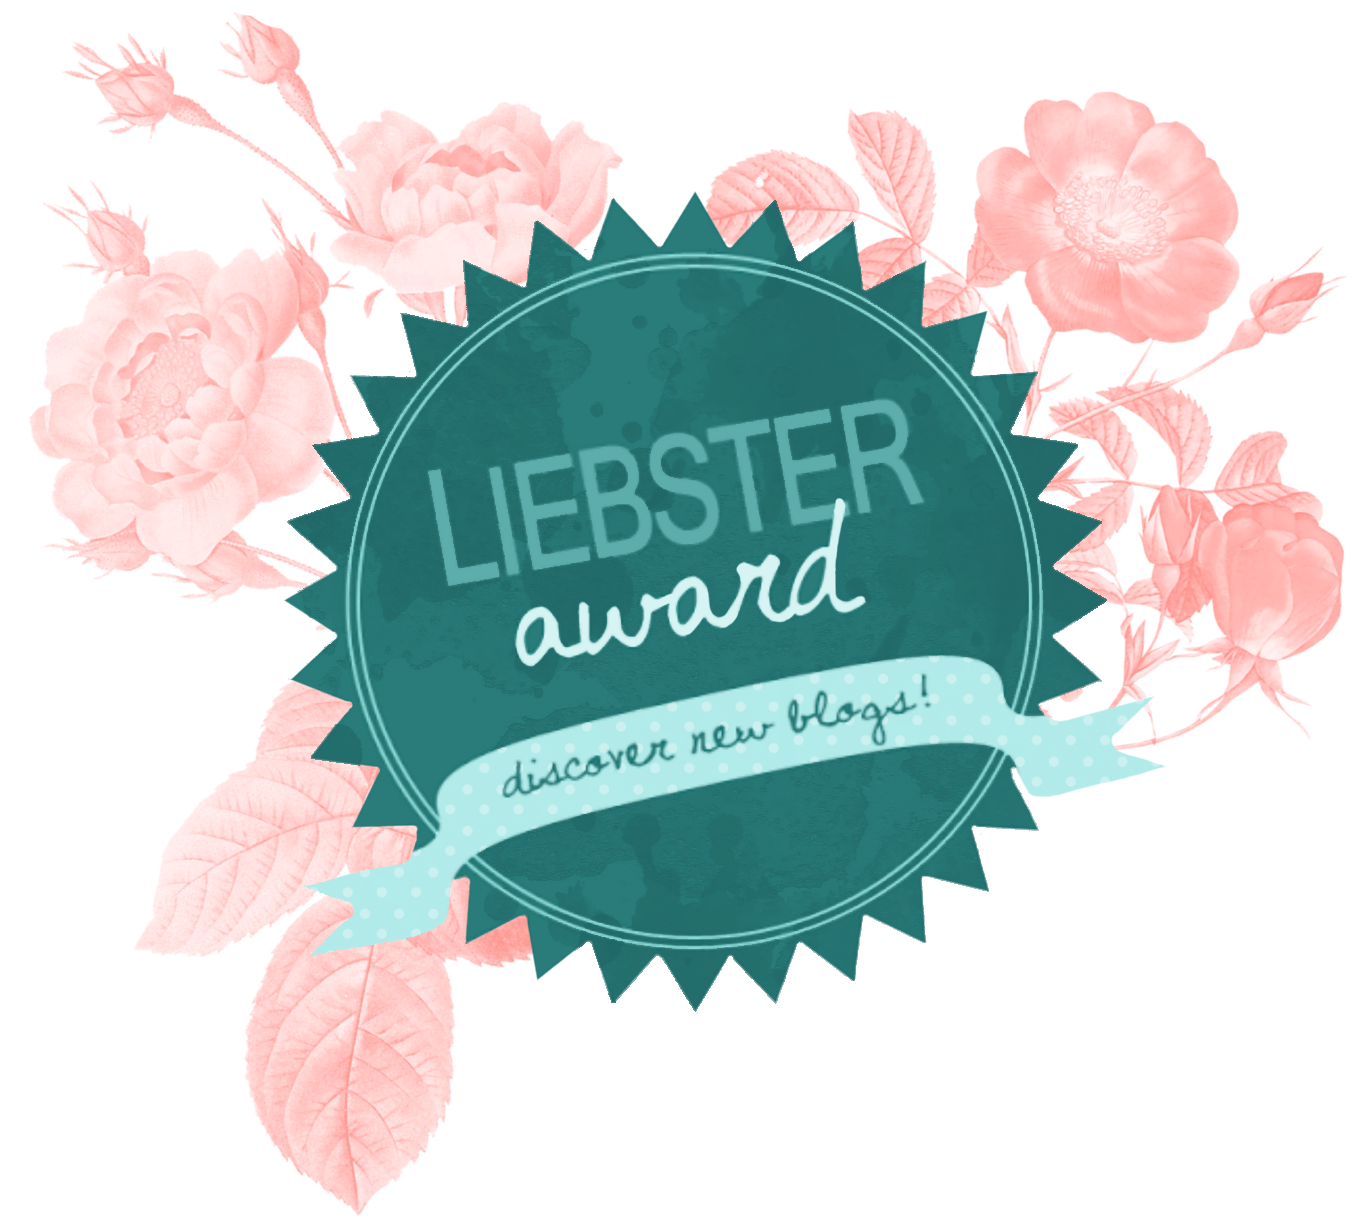 Award transparent official. The rules of liebster